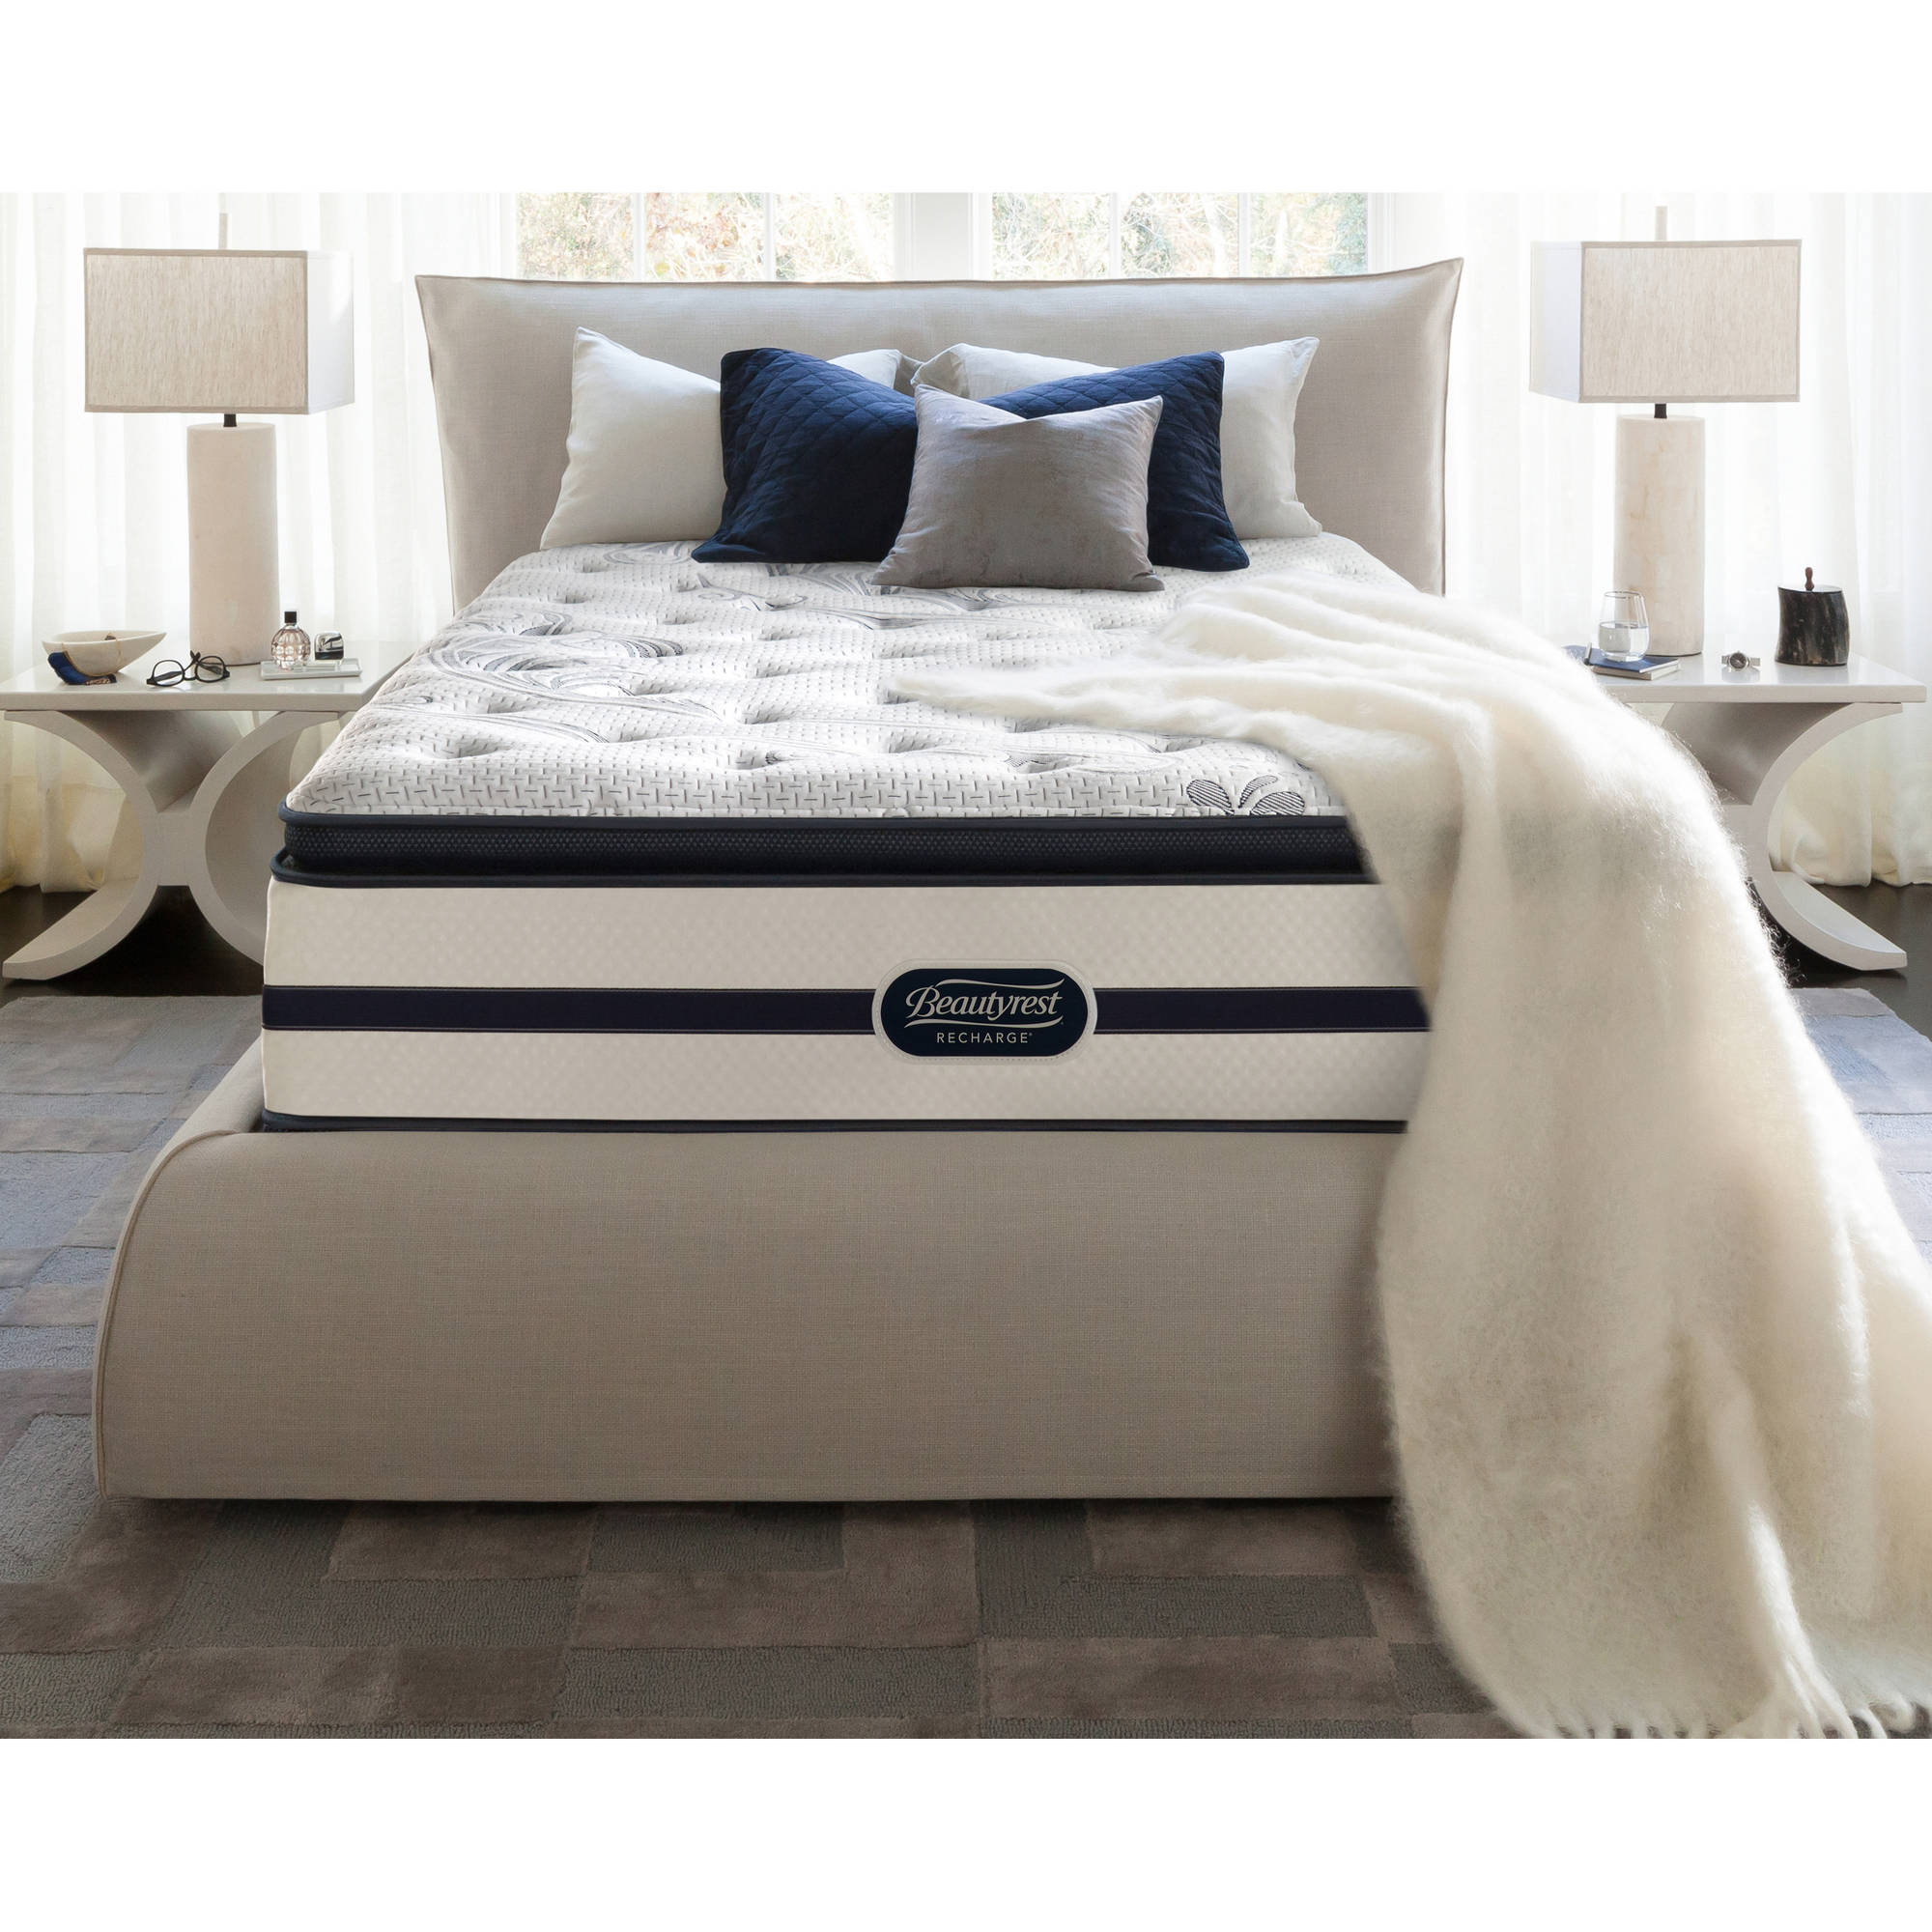 "Beautyrest Recharge Enchanting Nights 14"" Plush Pillowtop Mattress, Multiple Sizes"